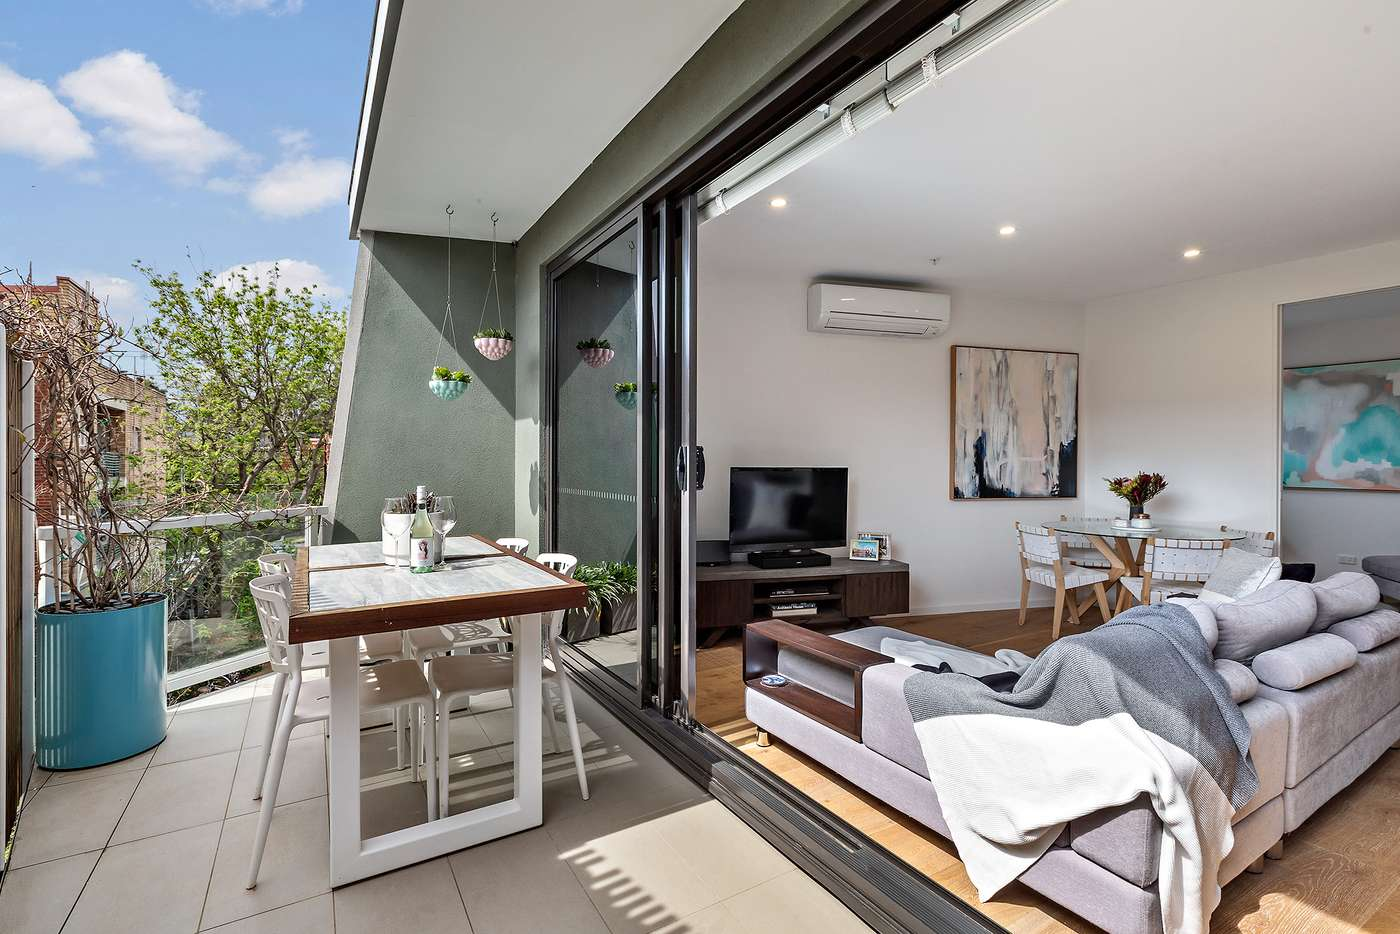 Fifth view of Homely apartment listing, 20/23 Mitford Street, St Kilda VIC 3182